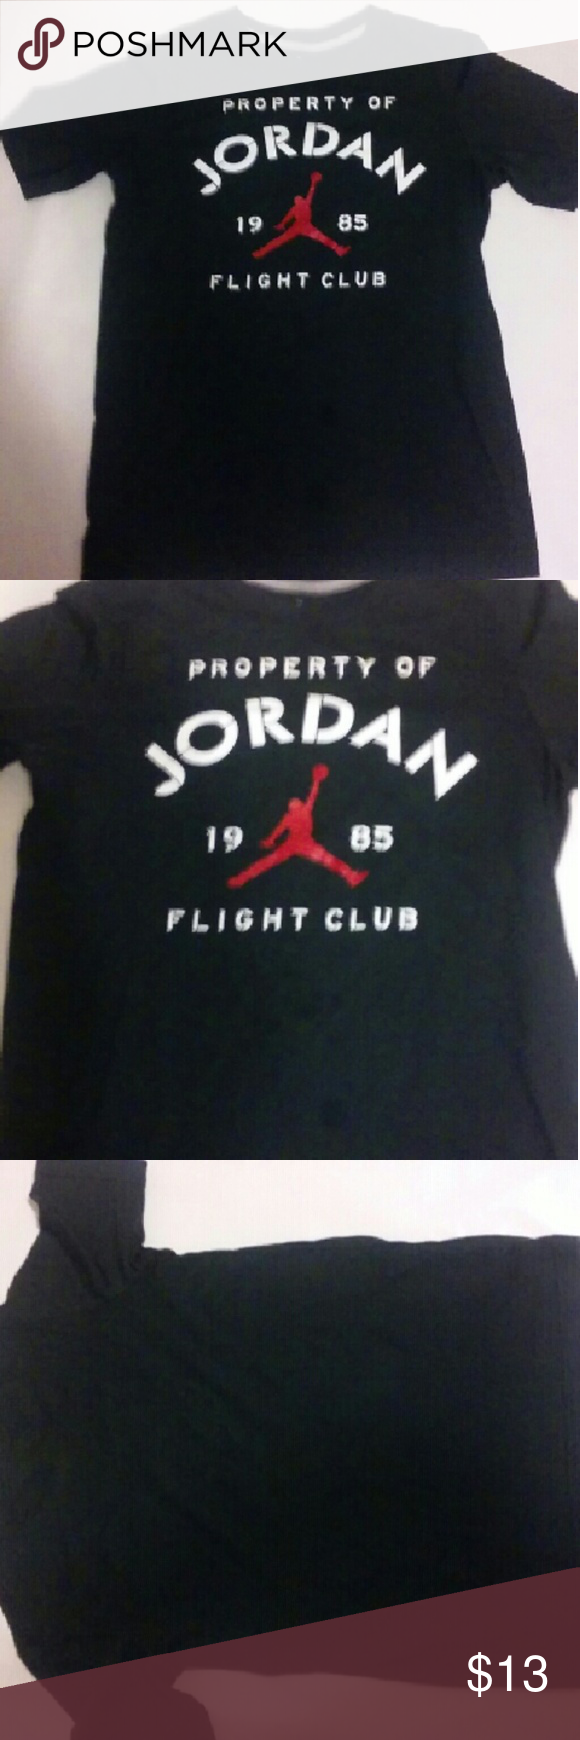 14e0509ce2deb1 Boys Jordan tshirt black size large 12-13 years Measurements Armpit to  armpit 18in Length 24in Jordan Shirts   Tops Tees - Short Sleeve